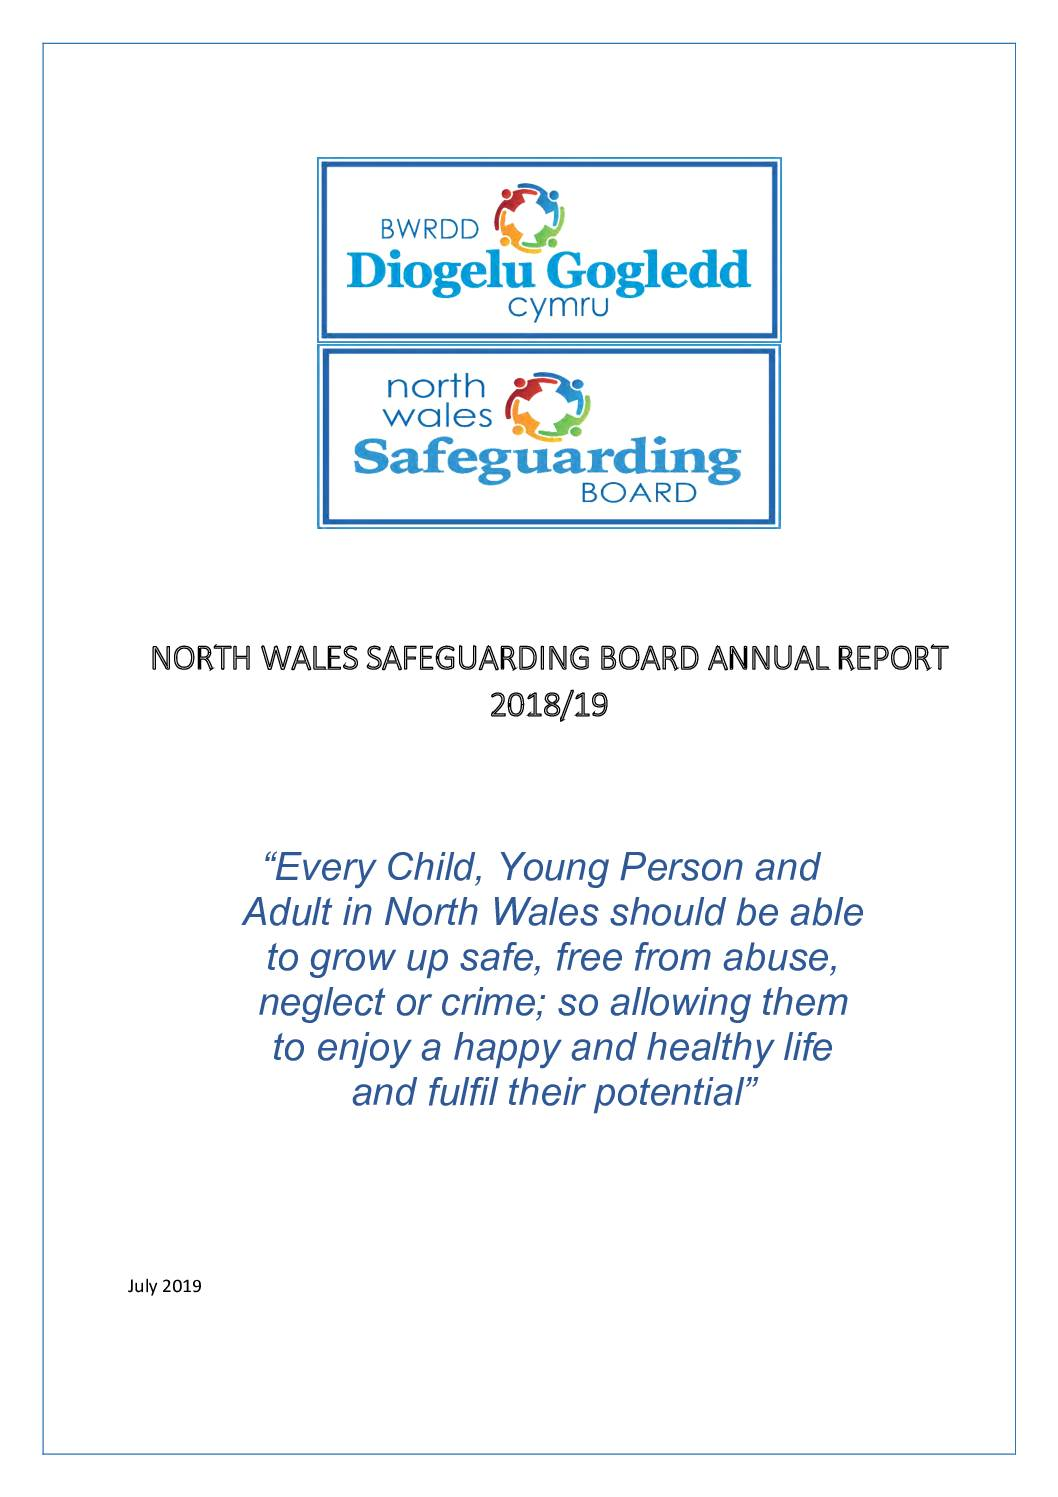 NWSB Annual Report 2018/19